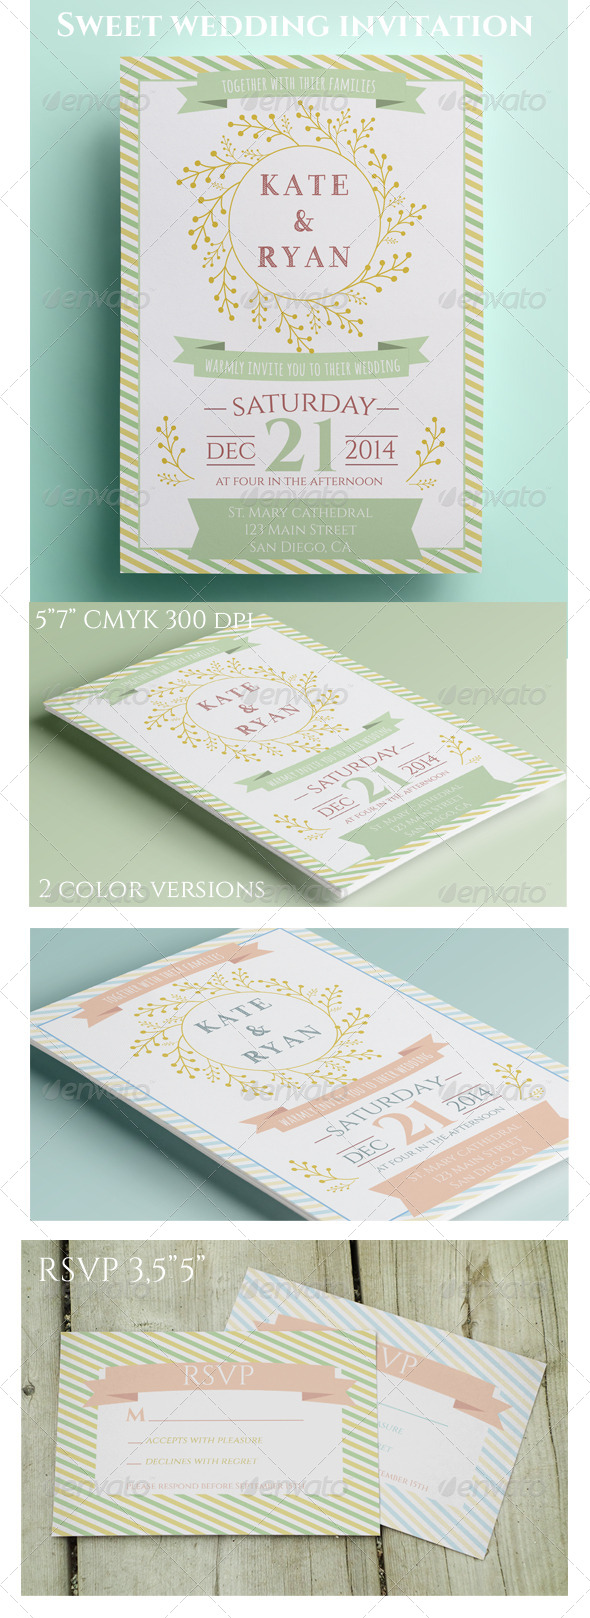 GraphicRiver Sweet Wedding Invitation and RSVP 8516521